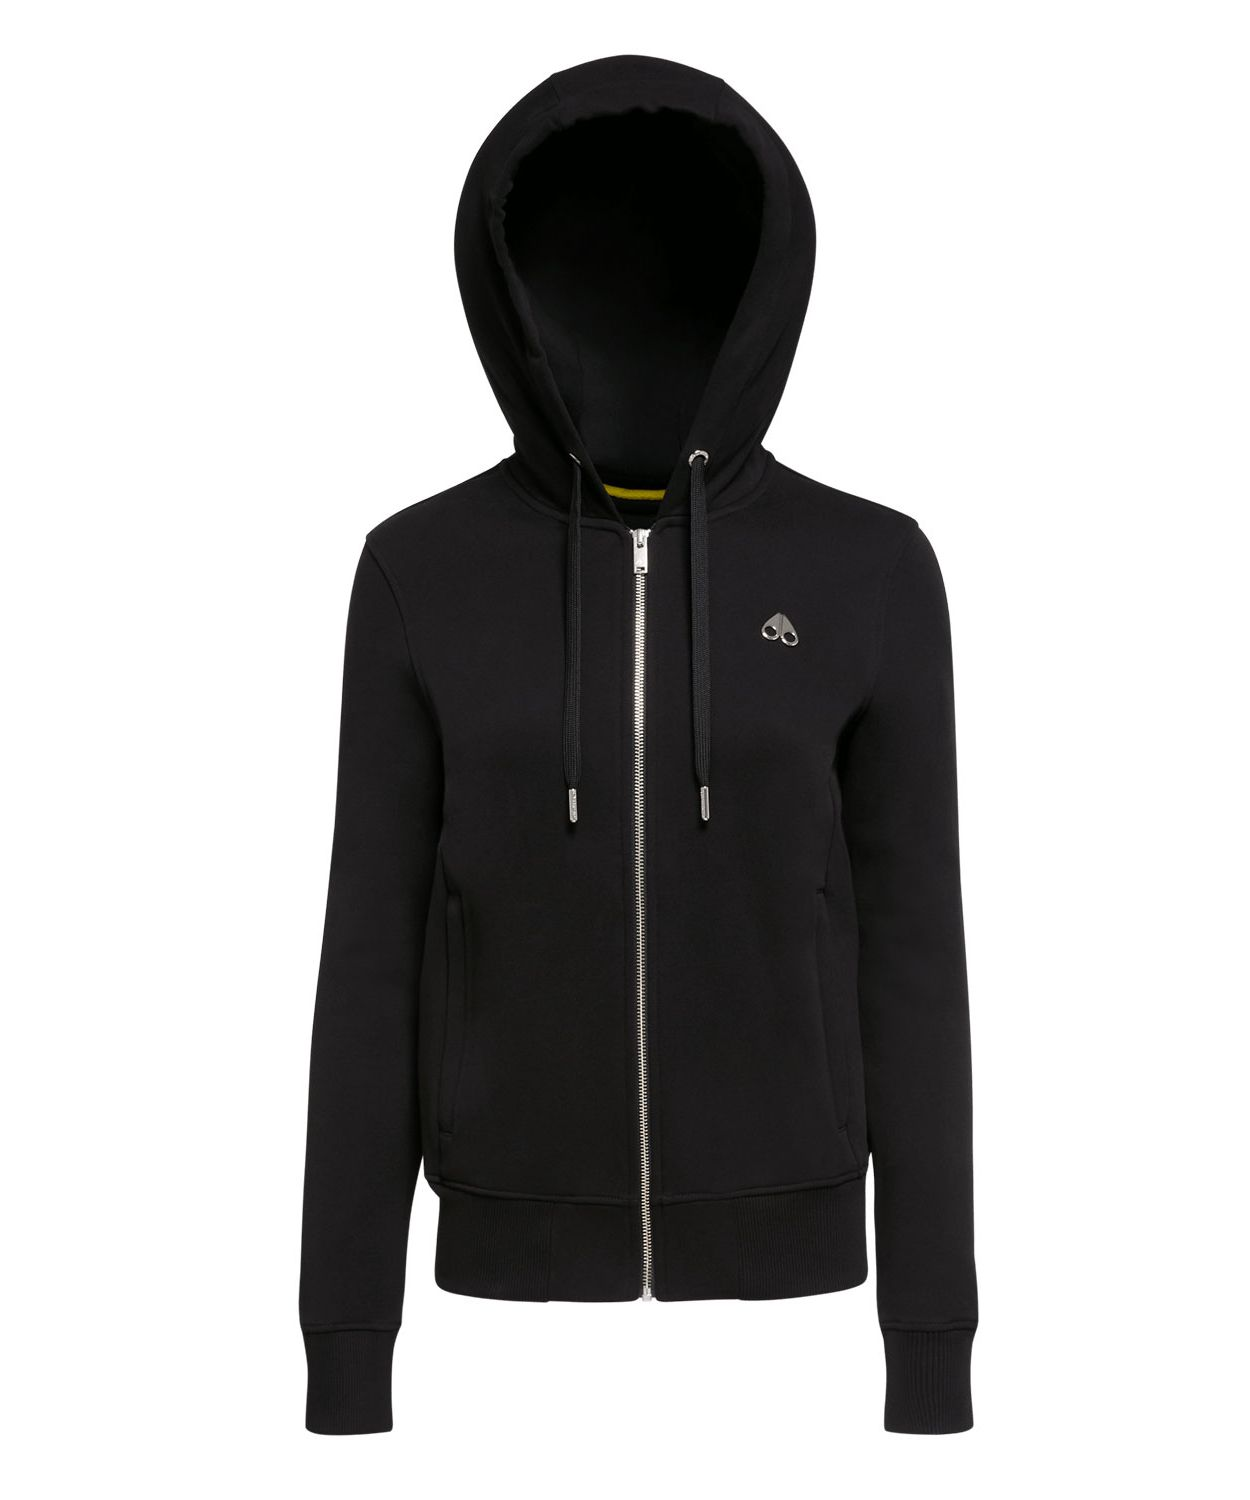 MAKEOUT ZIP UP